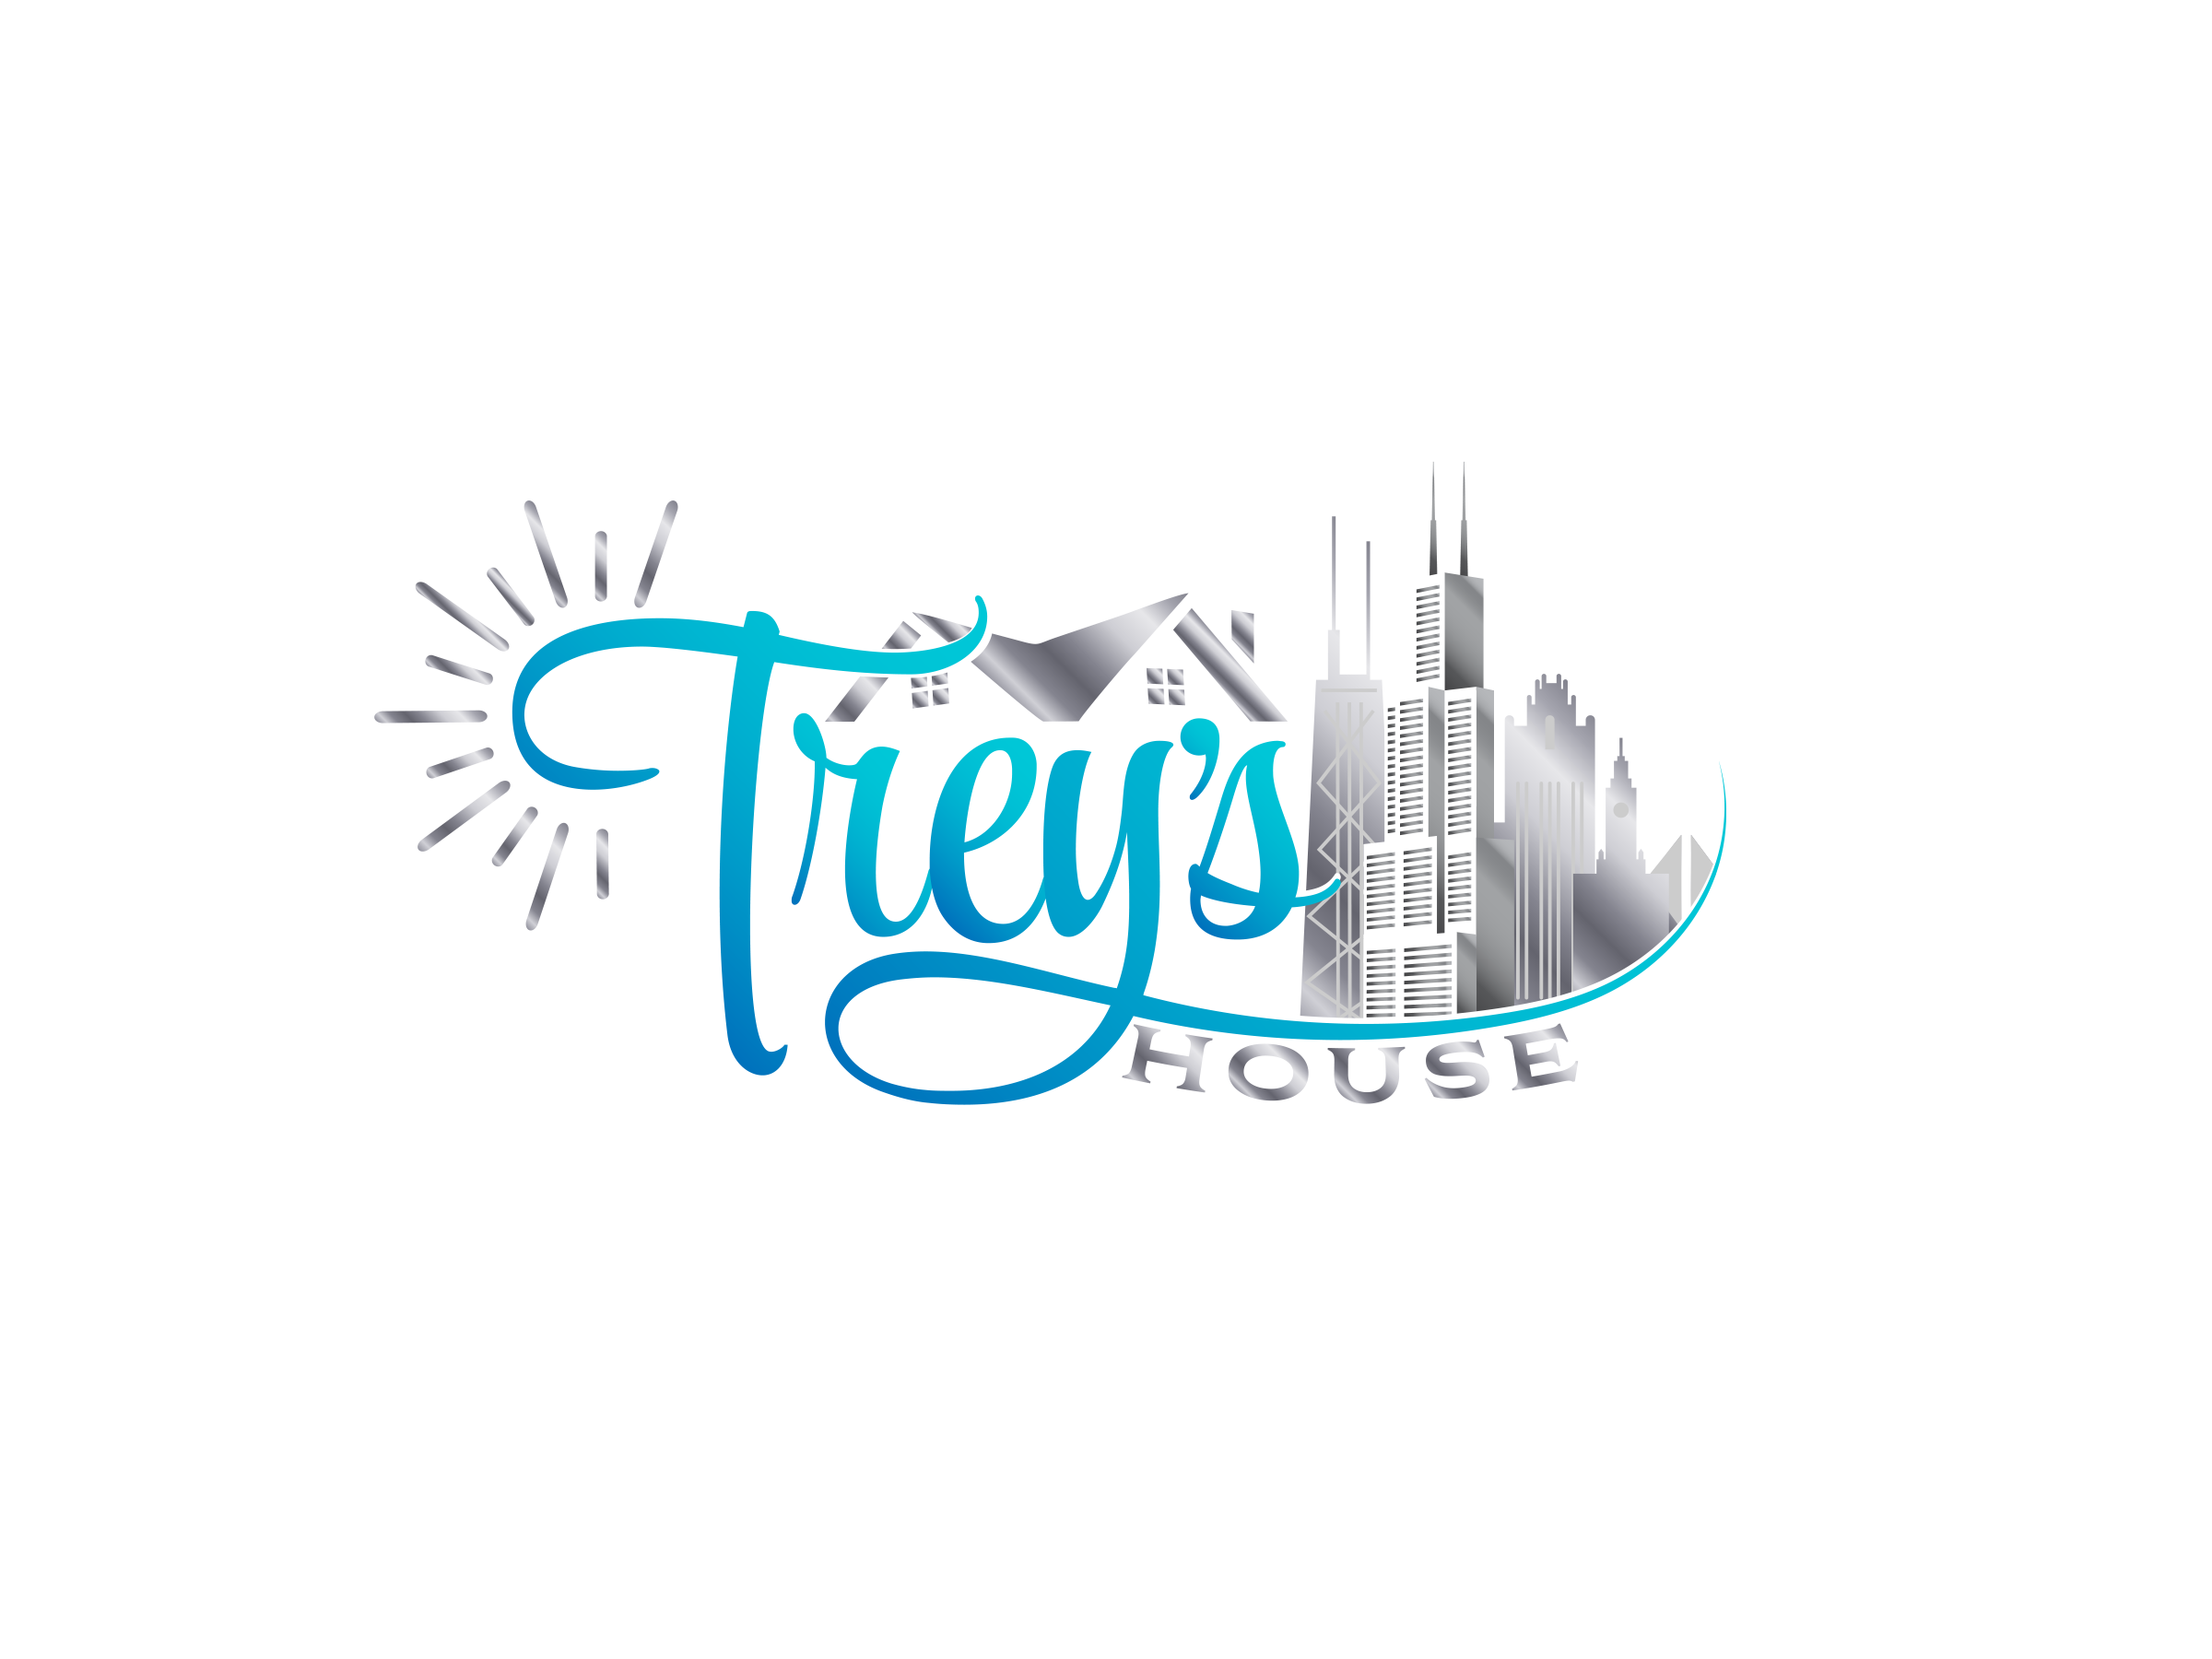 Treys-01 copy.png